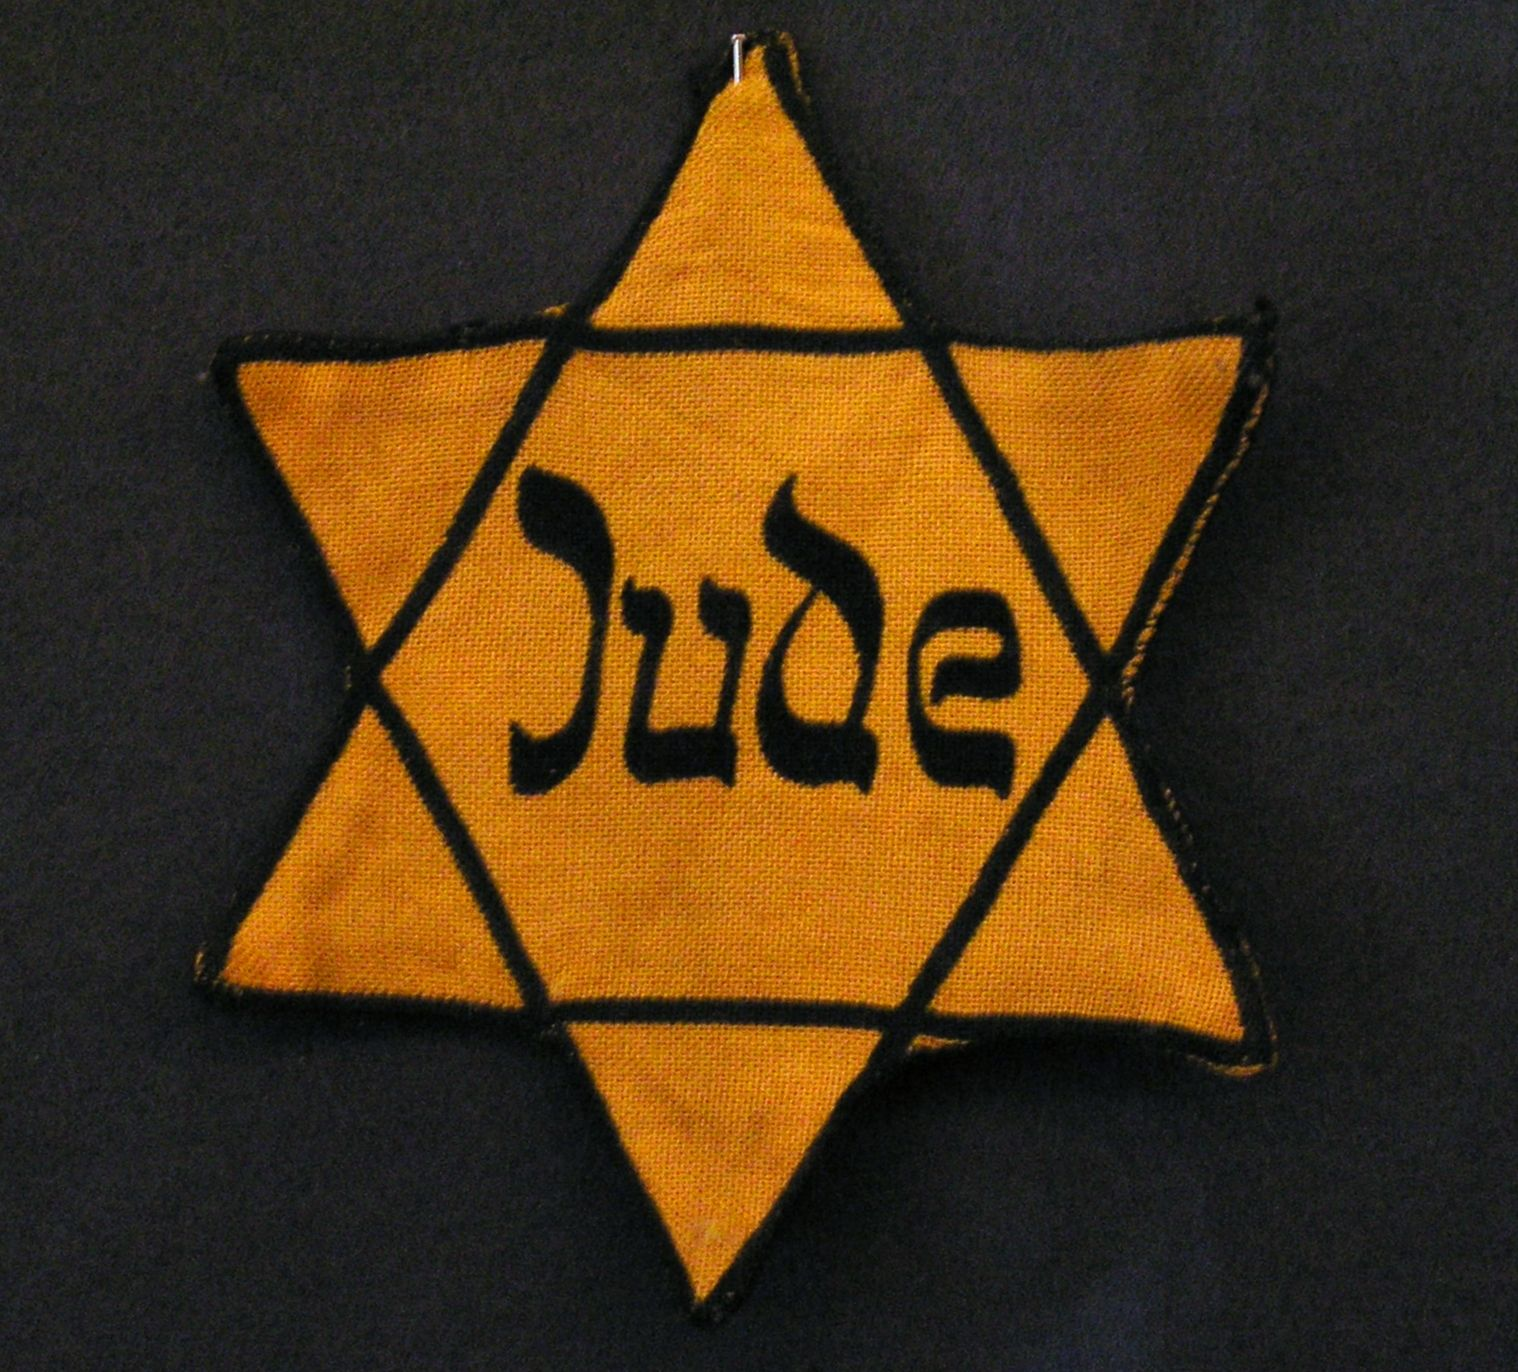 the requirement to wear the star of david with the word